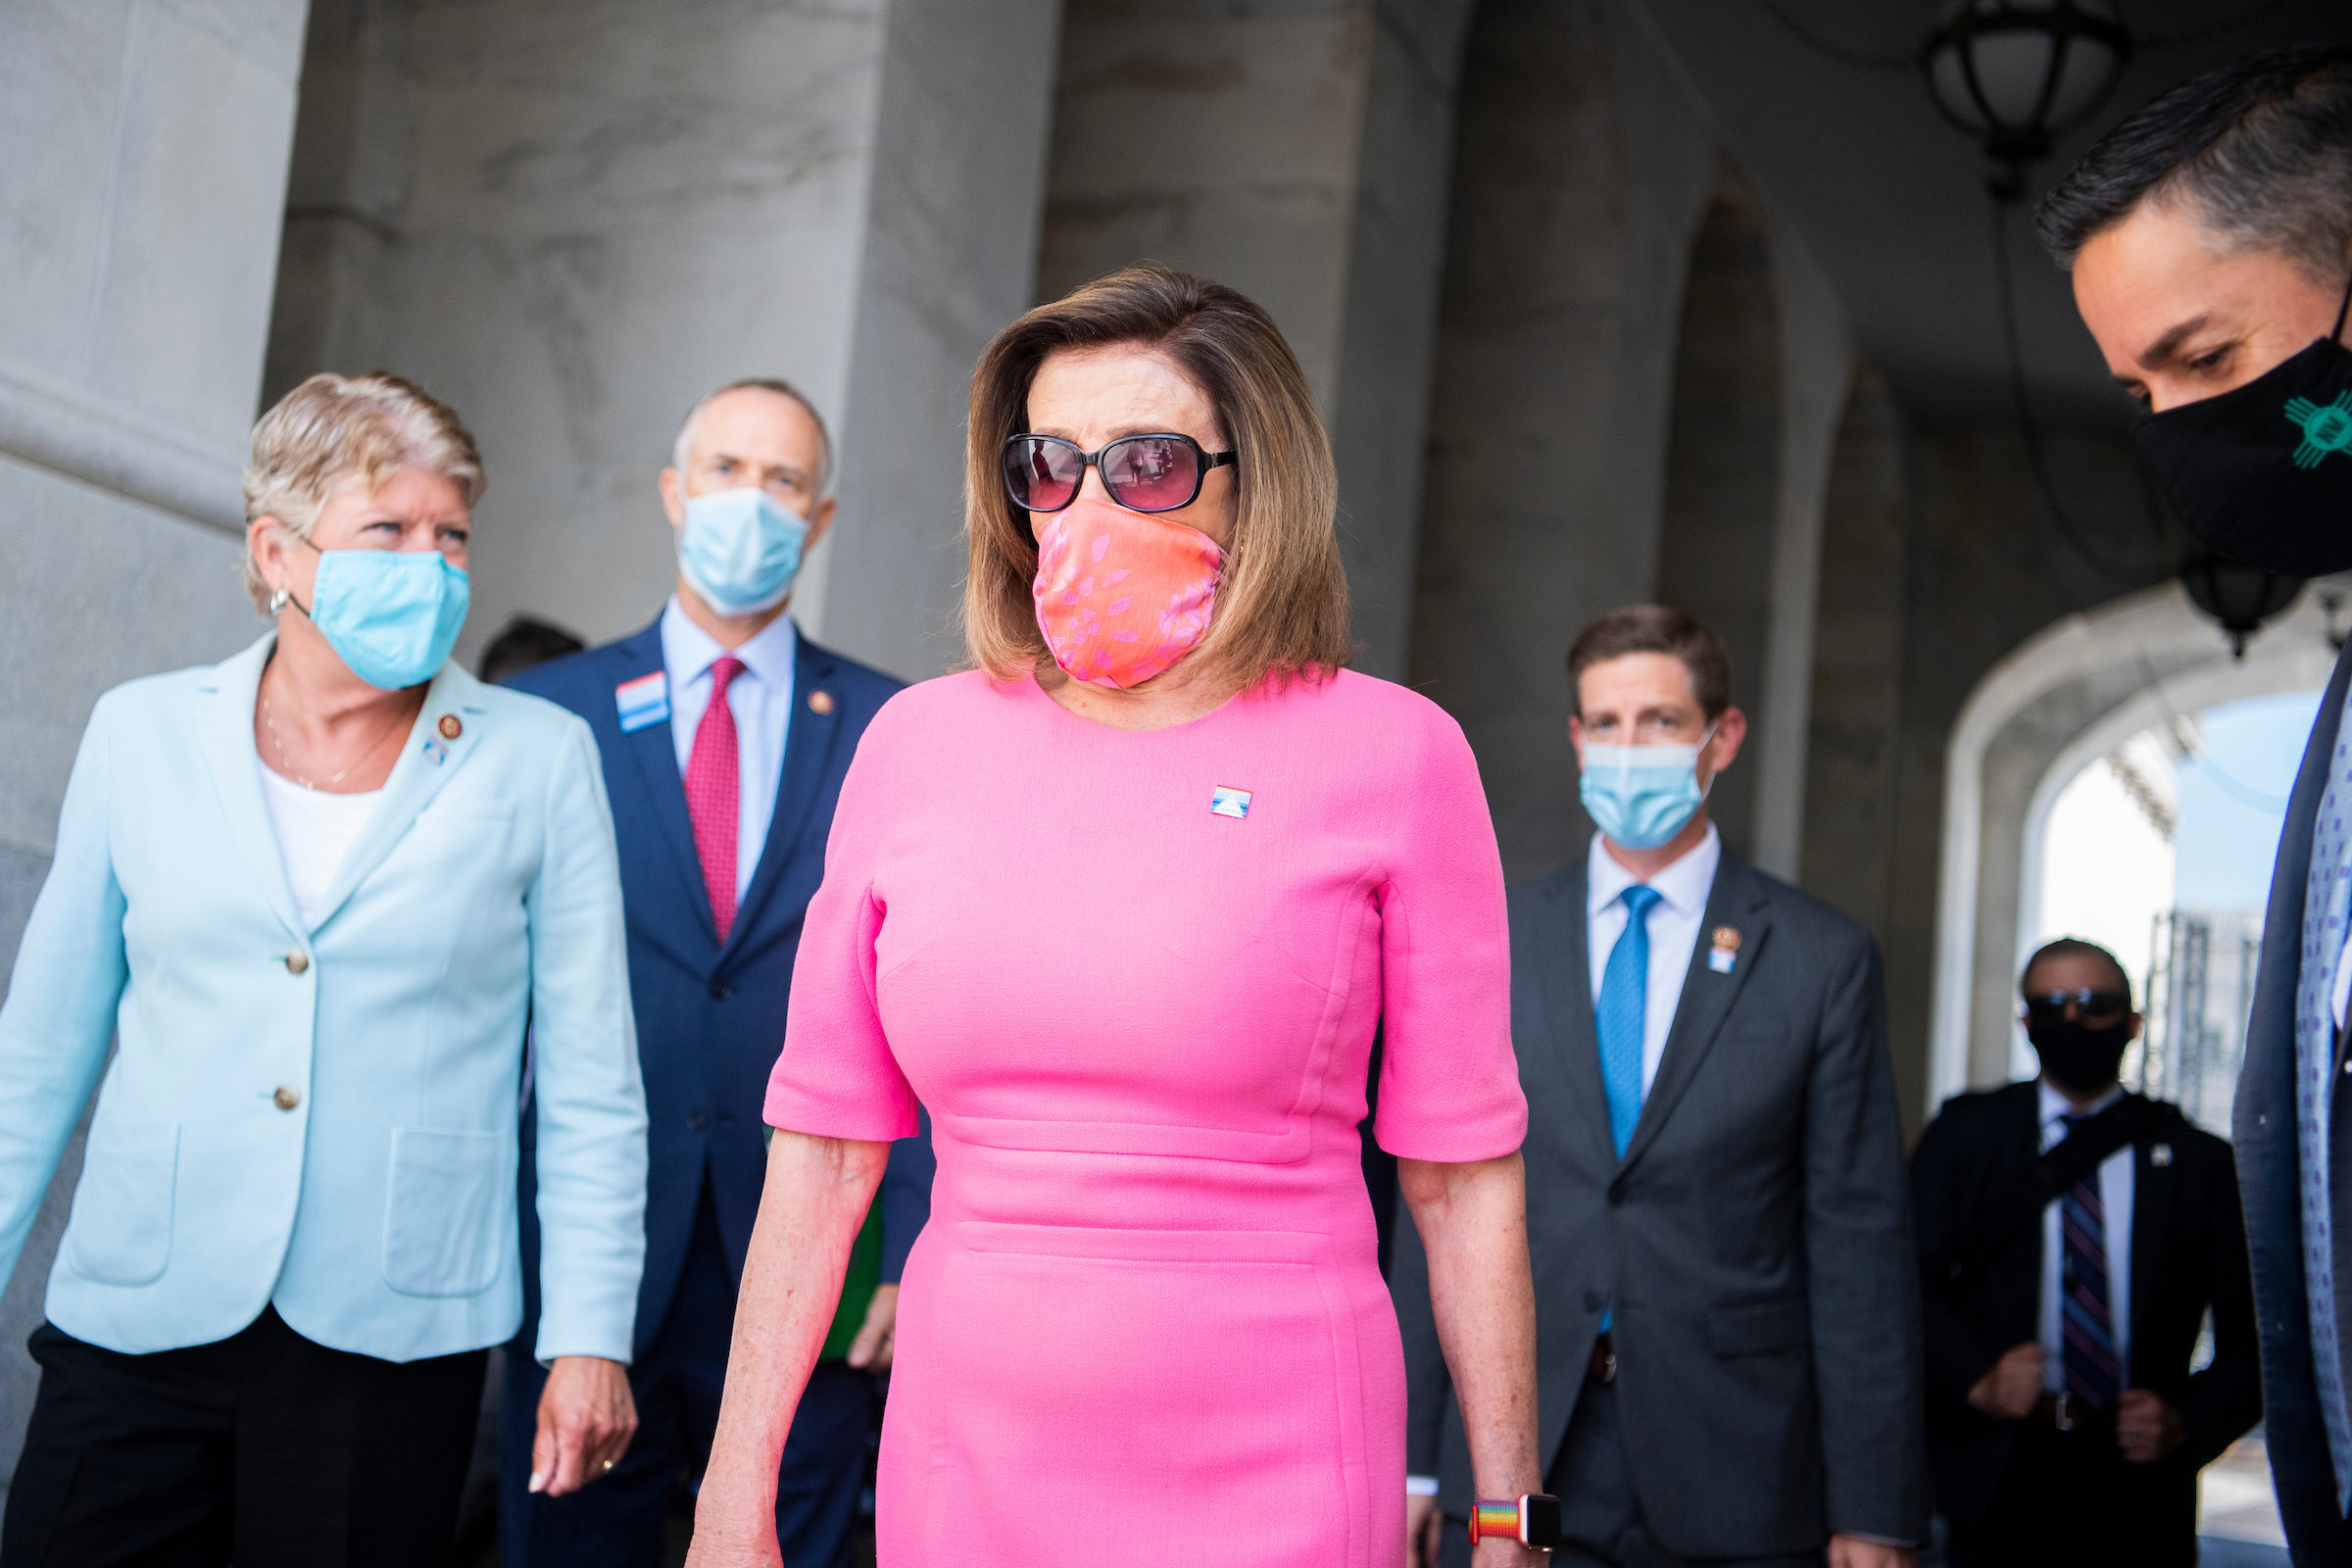 Speaker Nancy Pelosi, D-Calif., makes her way to a news conference on the House steps with members of the House Select Committee on the Climate Crisis, Tuesday, June 30, 2020. Also appearing are, from left, Reps. Julia Brownley, D-Calif., Jared Huffman, D-Calif., Mike Levin, D-Calif., and Ben Ray Lujan, D-N.M., far right. (Tom Williams/CQ Roll Call)